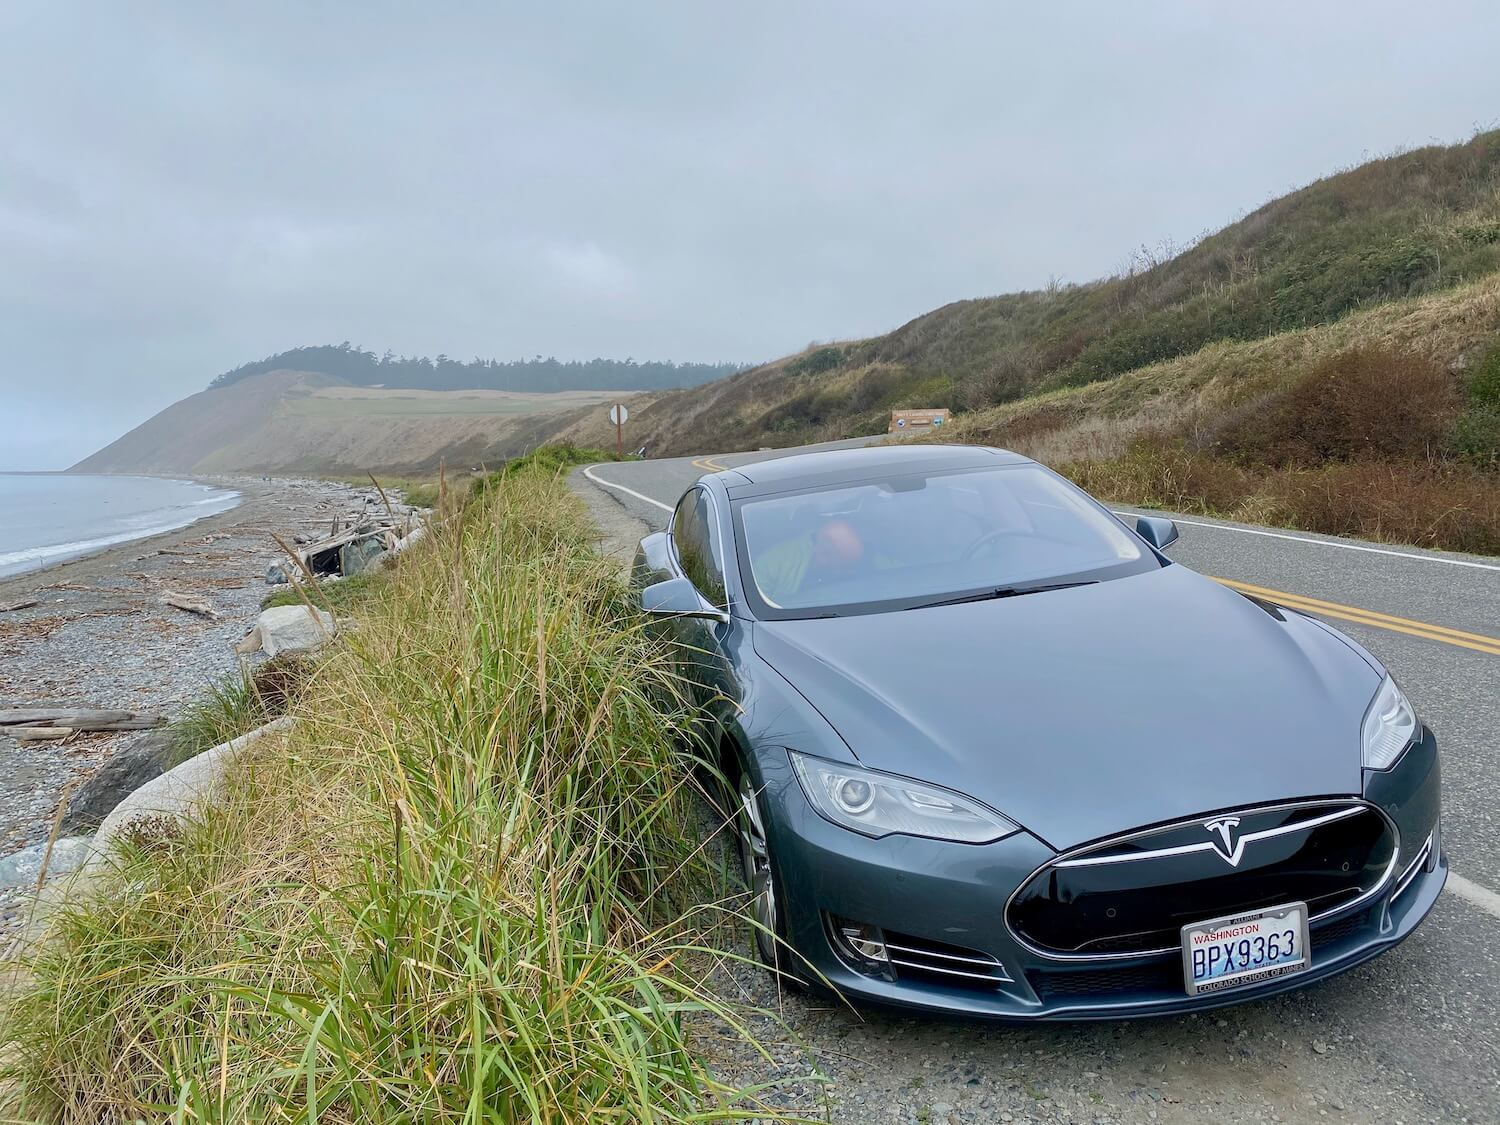 a gray Tesla sits on the side of a road just on the edge of a bank leading down to a beach on Whidbey Island in the middle of the Puget Sound